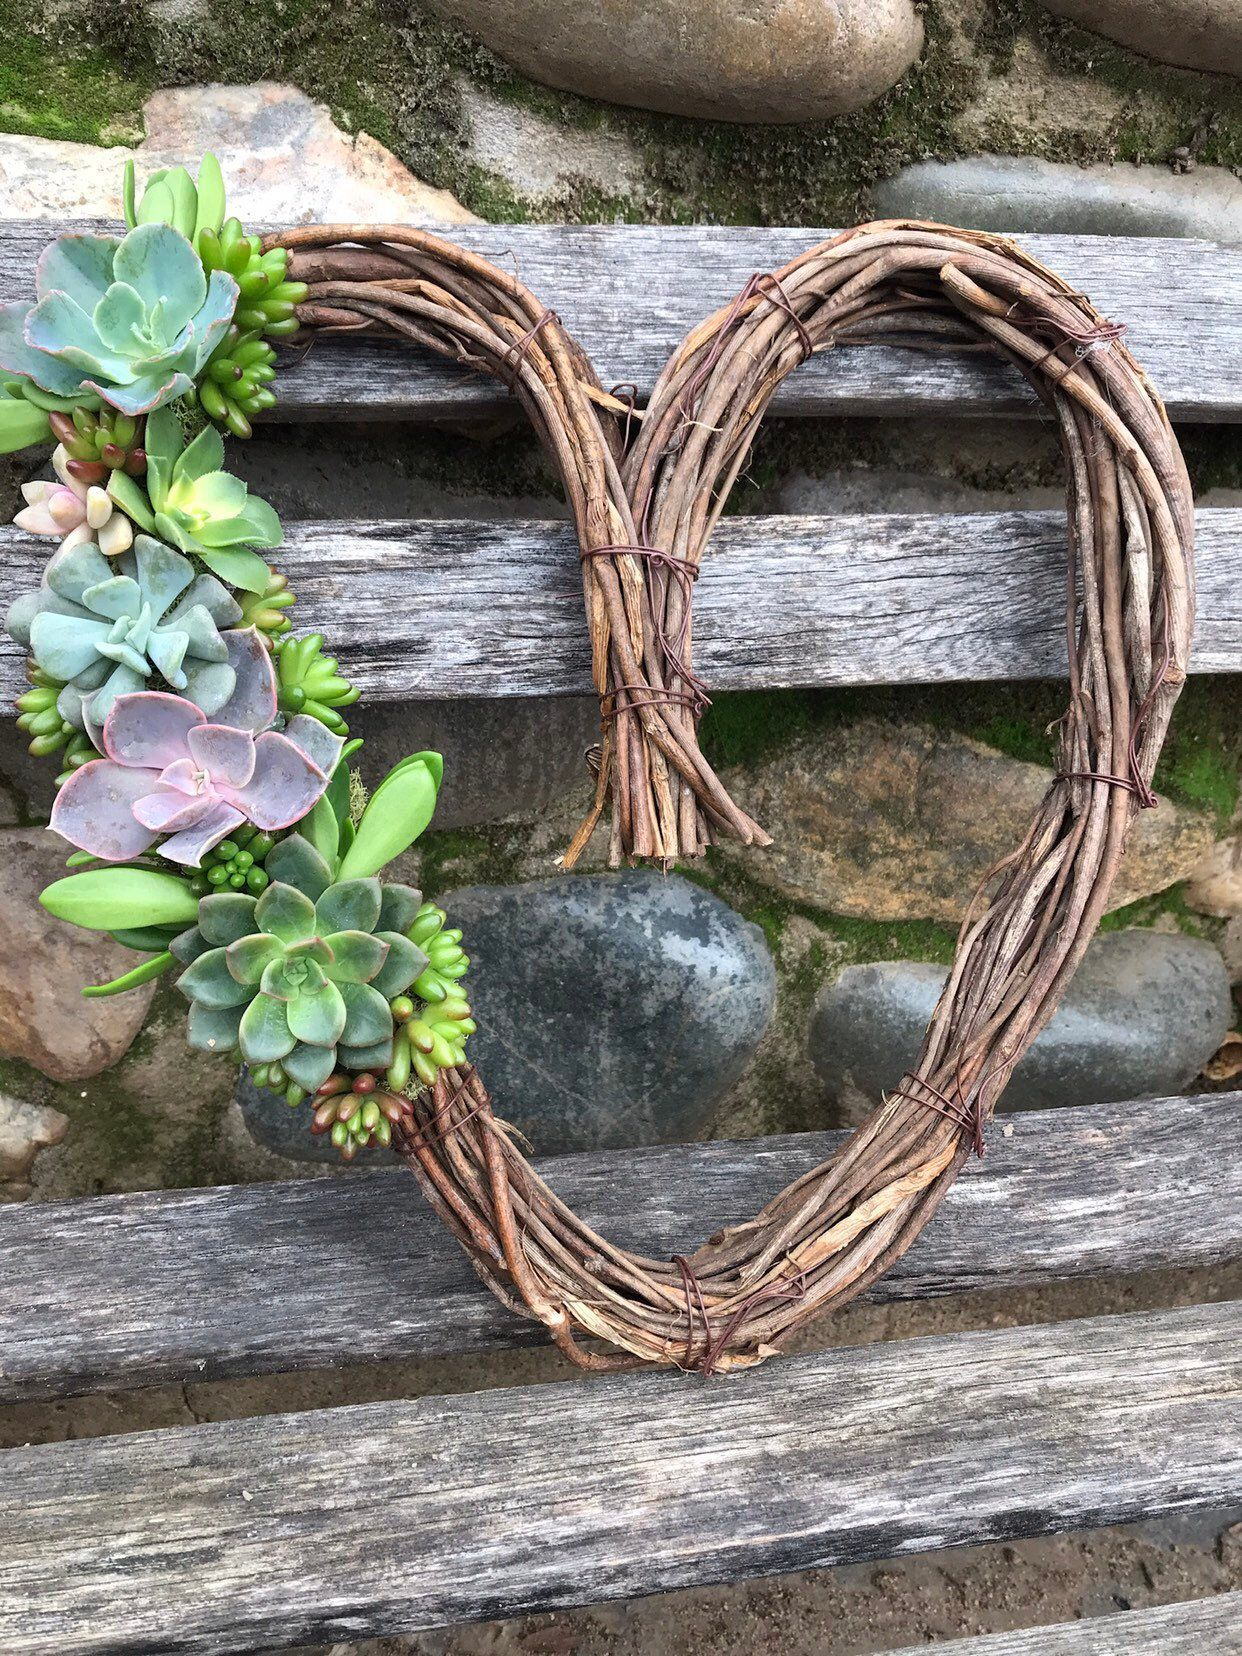 Live Hanging Succulent Topped Grapevine Heart Wreath Hanging Succulent Decor Holiday Gift Idea Mini Succulent Wreaths Living Gift Succulent Wreath Diy Grape Vines Succulents Decor